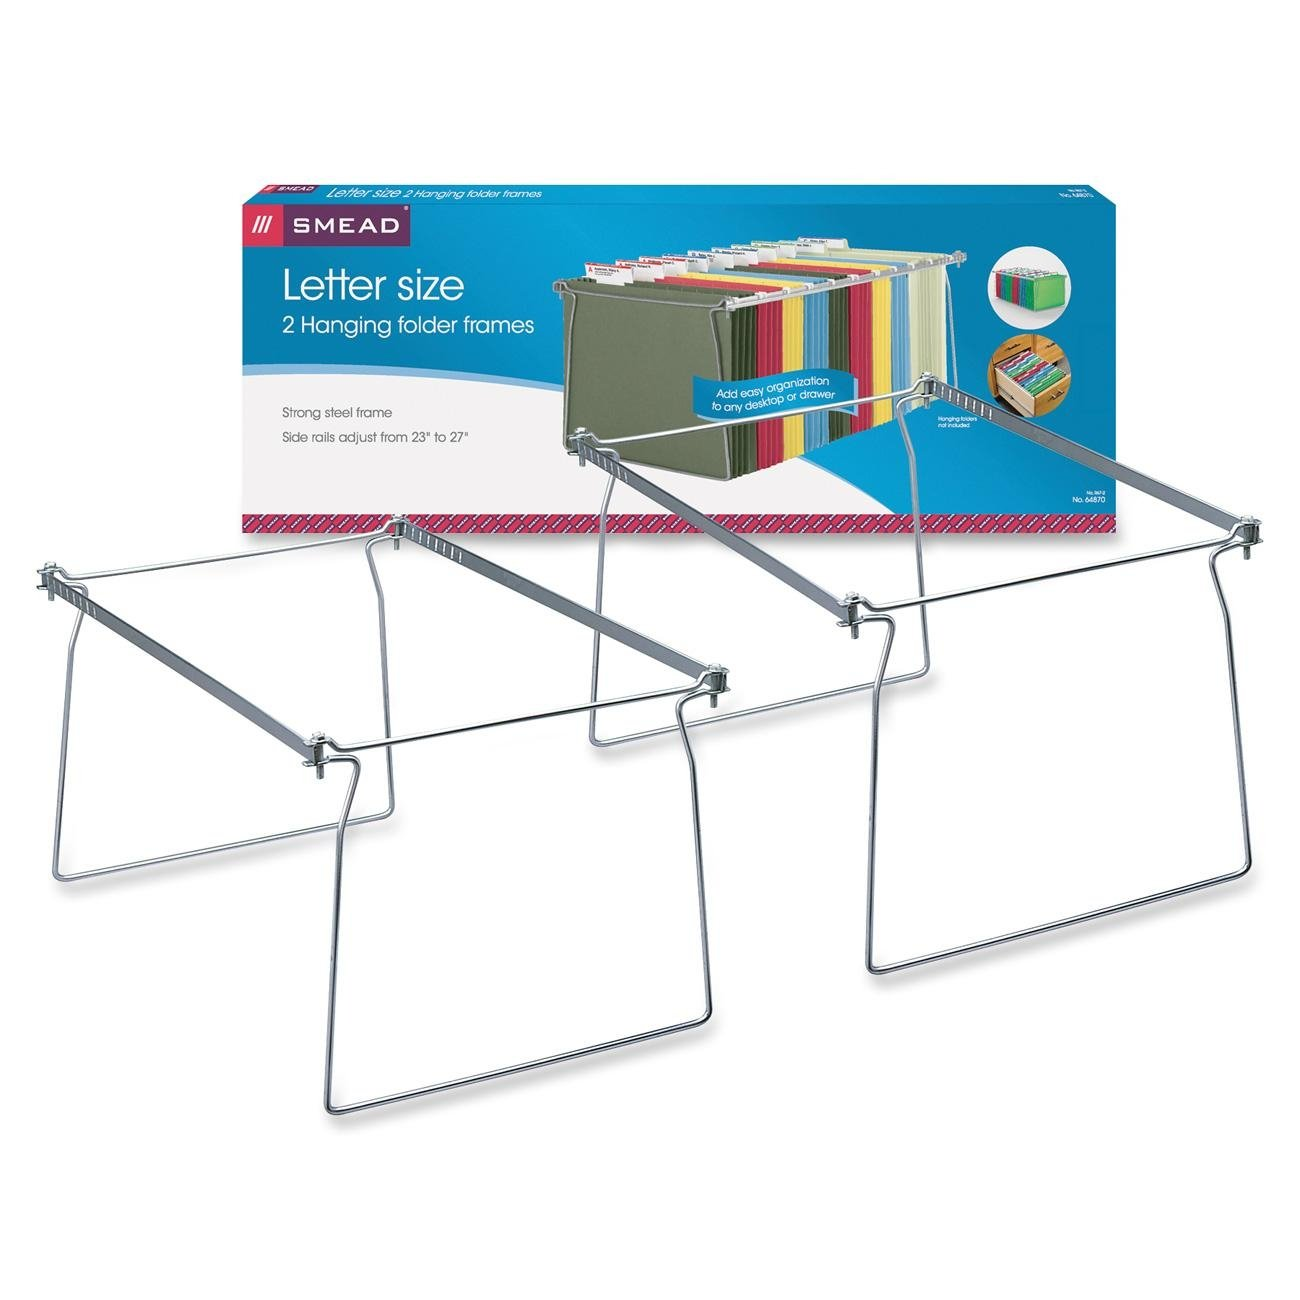 cabinets category cpsff office hangers source drawer filing cabinet solutions storage product view two furniture file